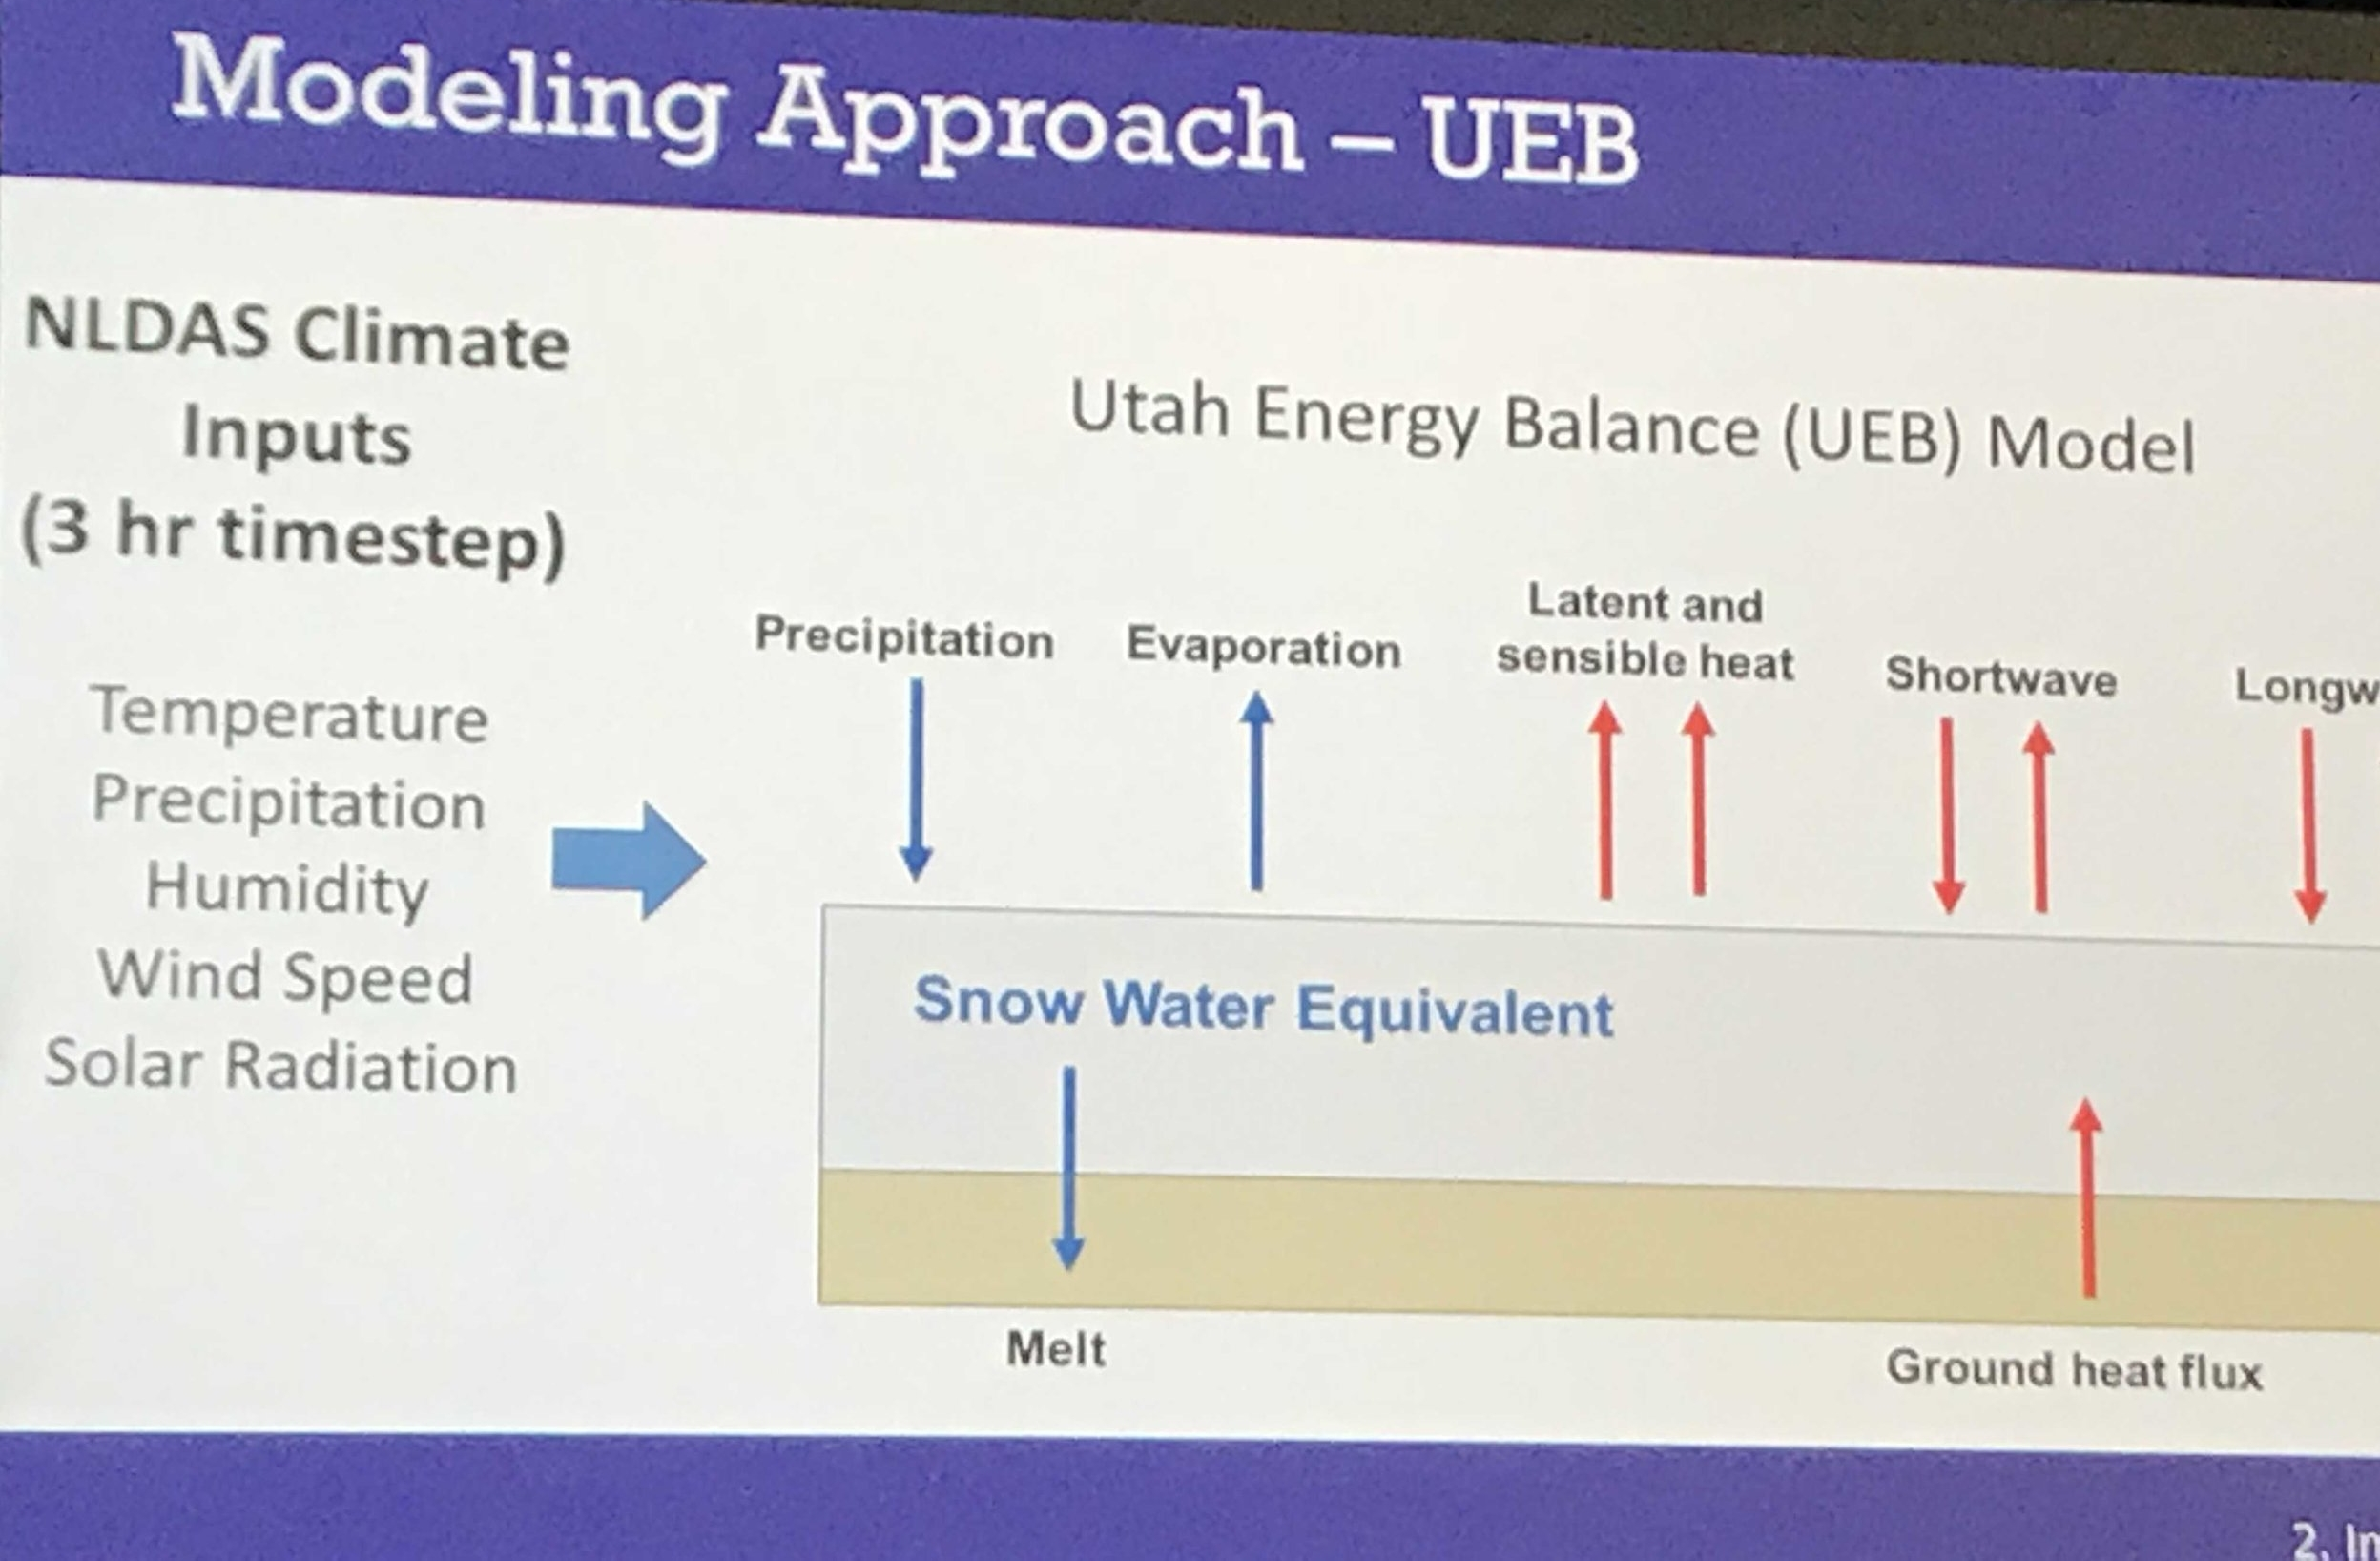 Geeking out on modeling approaches to future climate changes and what they could mean for the number of ski days per year.